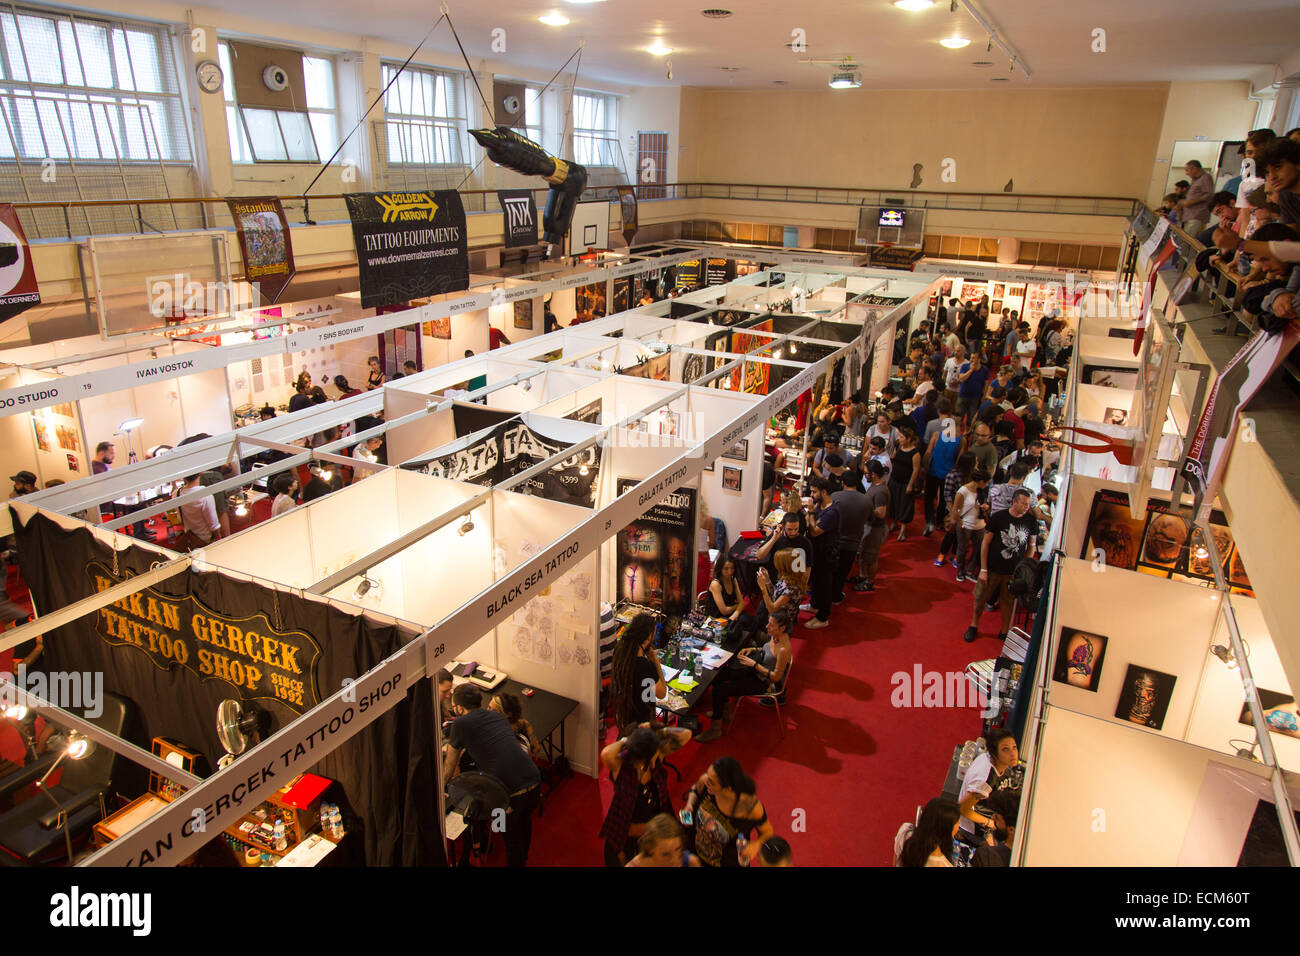 ISTANBUL, TURKEY - SEPTEMBER 20, 2014: Tattooists meet in Istanbul Tattoo Convention which held in Kadikoy. Stock Photo